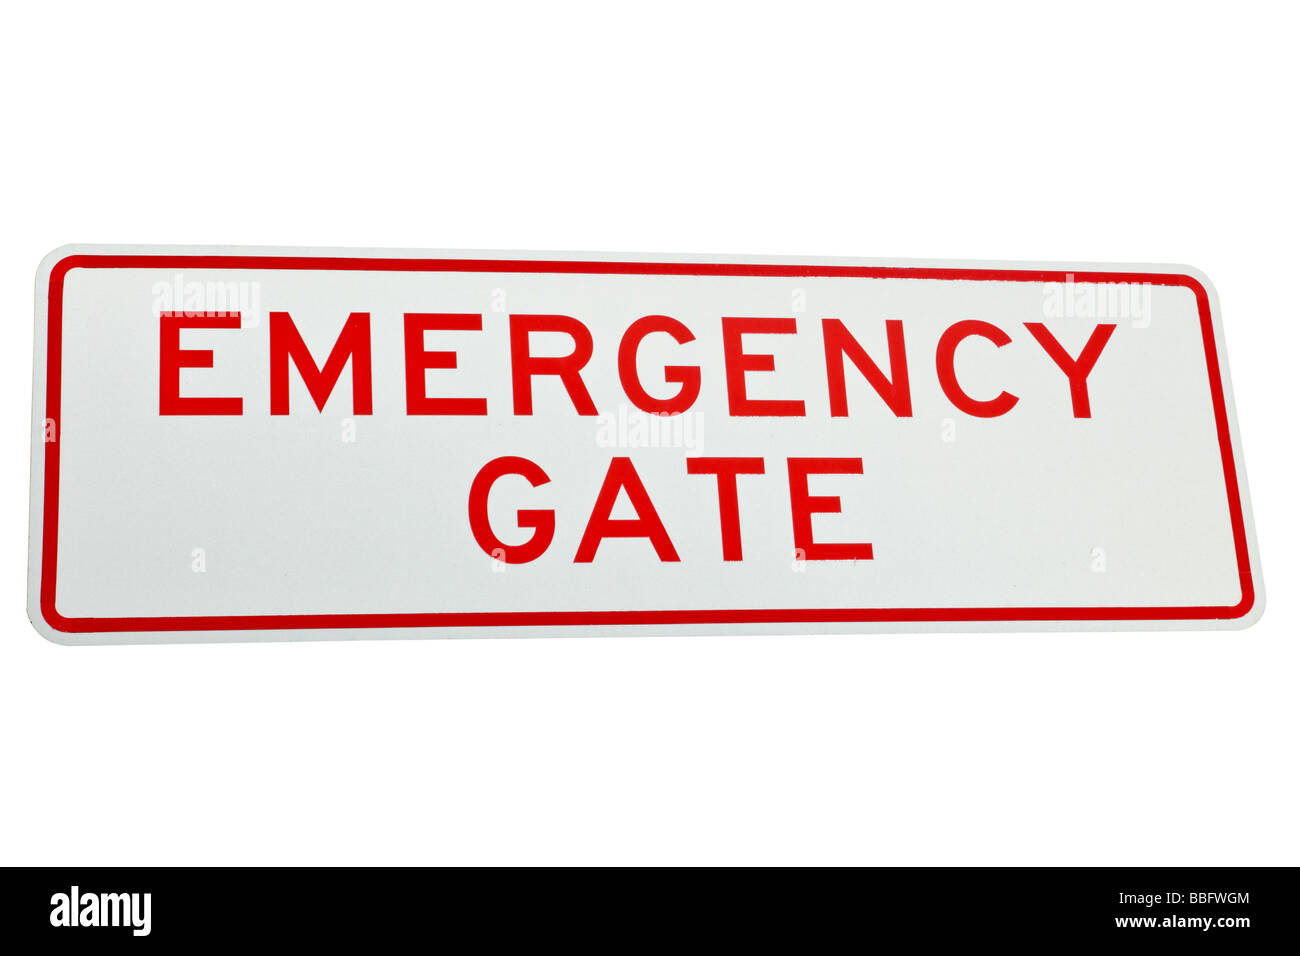 Street or road sign detailing an emergency gate - Stock Image